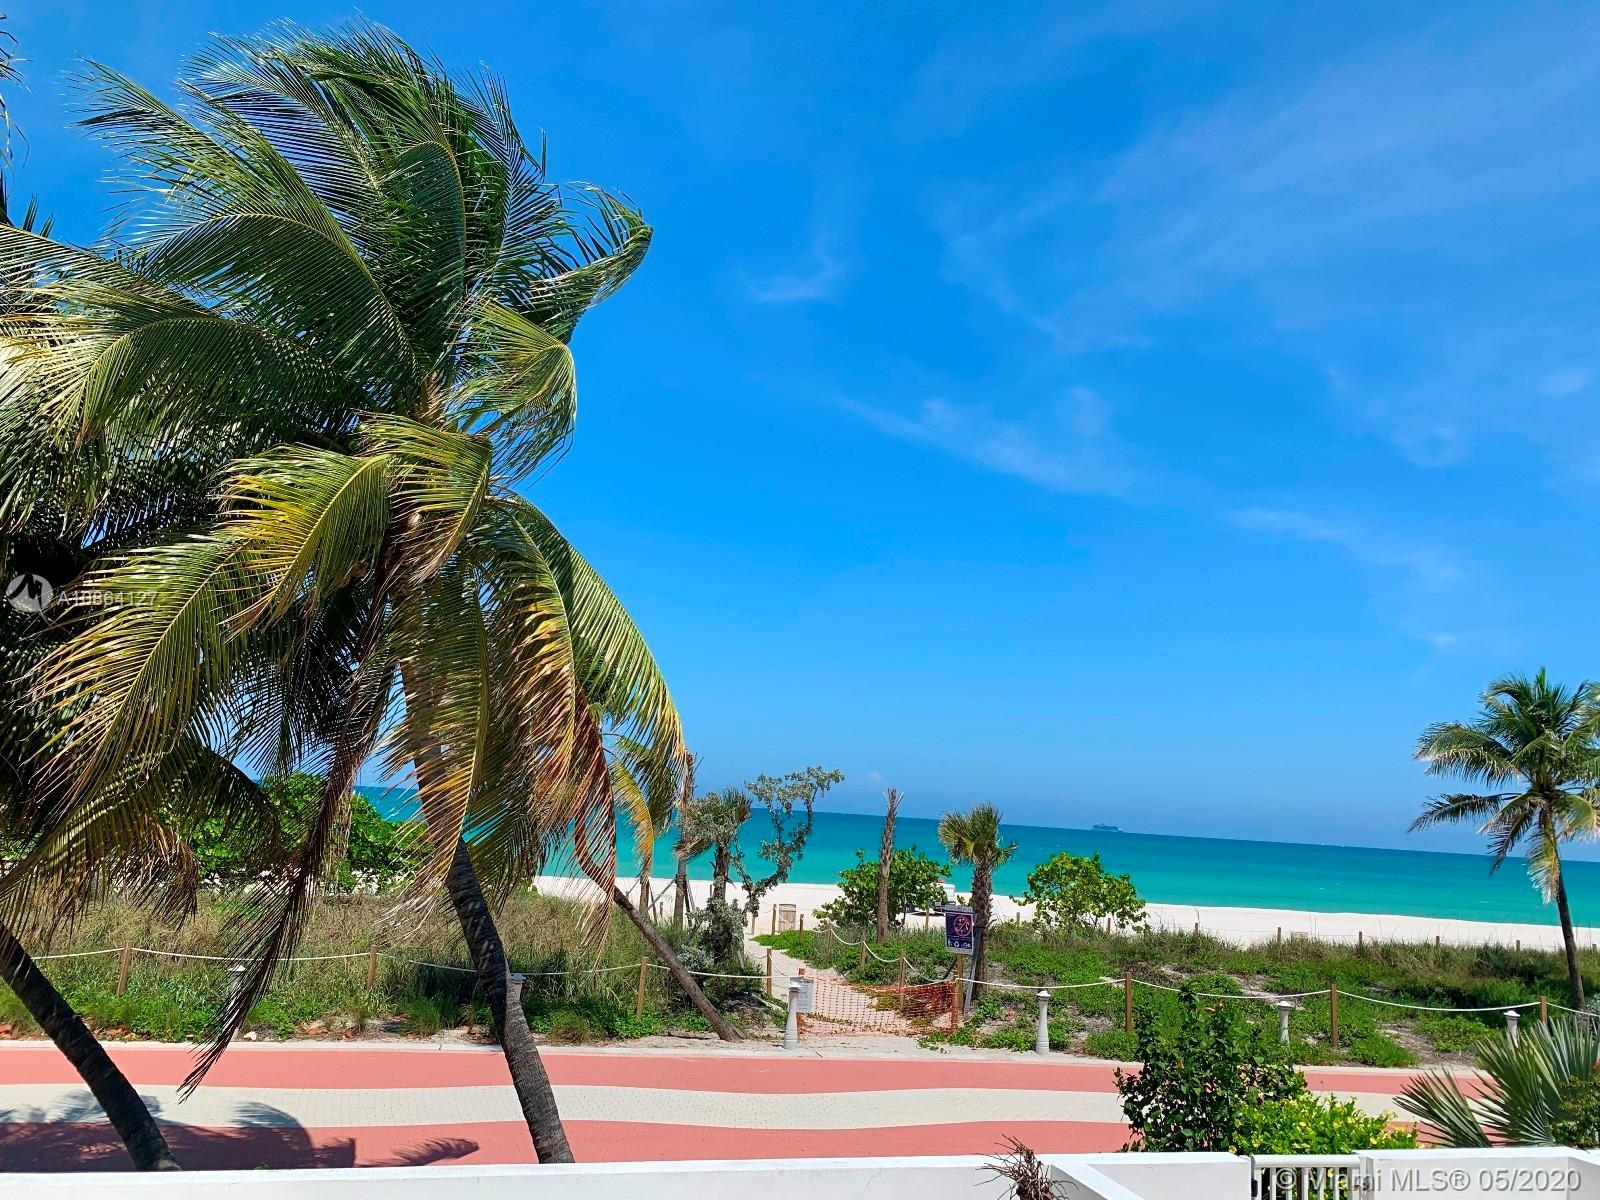 Beachfront property with private access to Miami Beach. Highly unique property—step out of your home